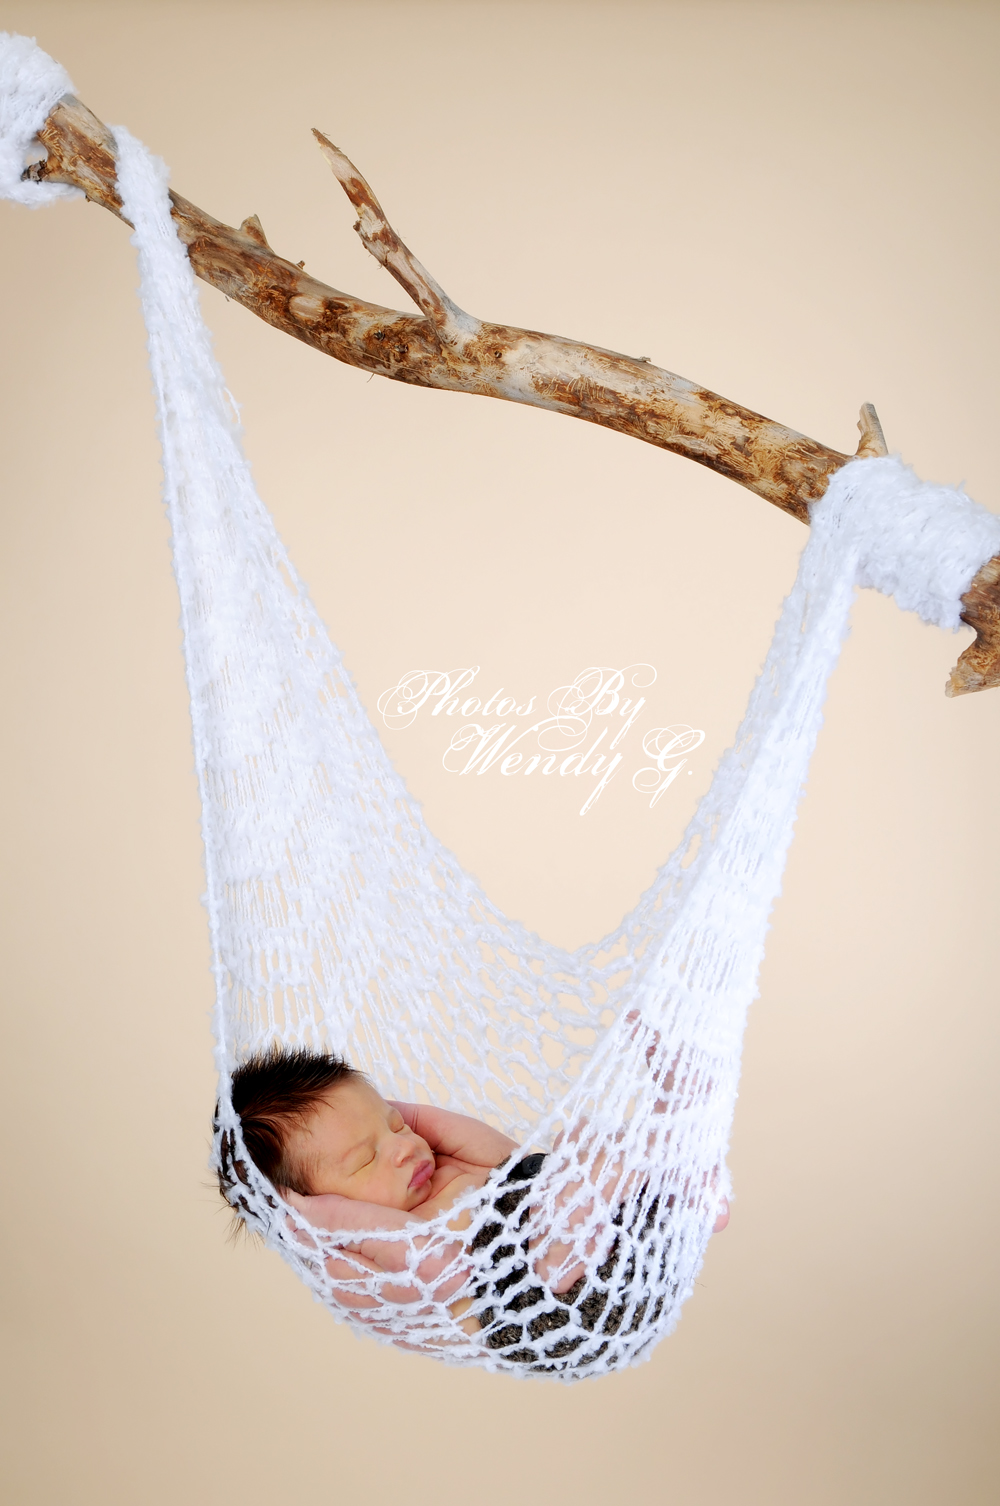 Medium image of crochet baby hammock photography prop